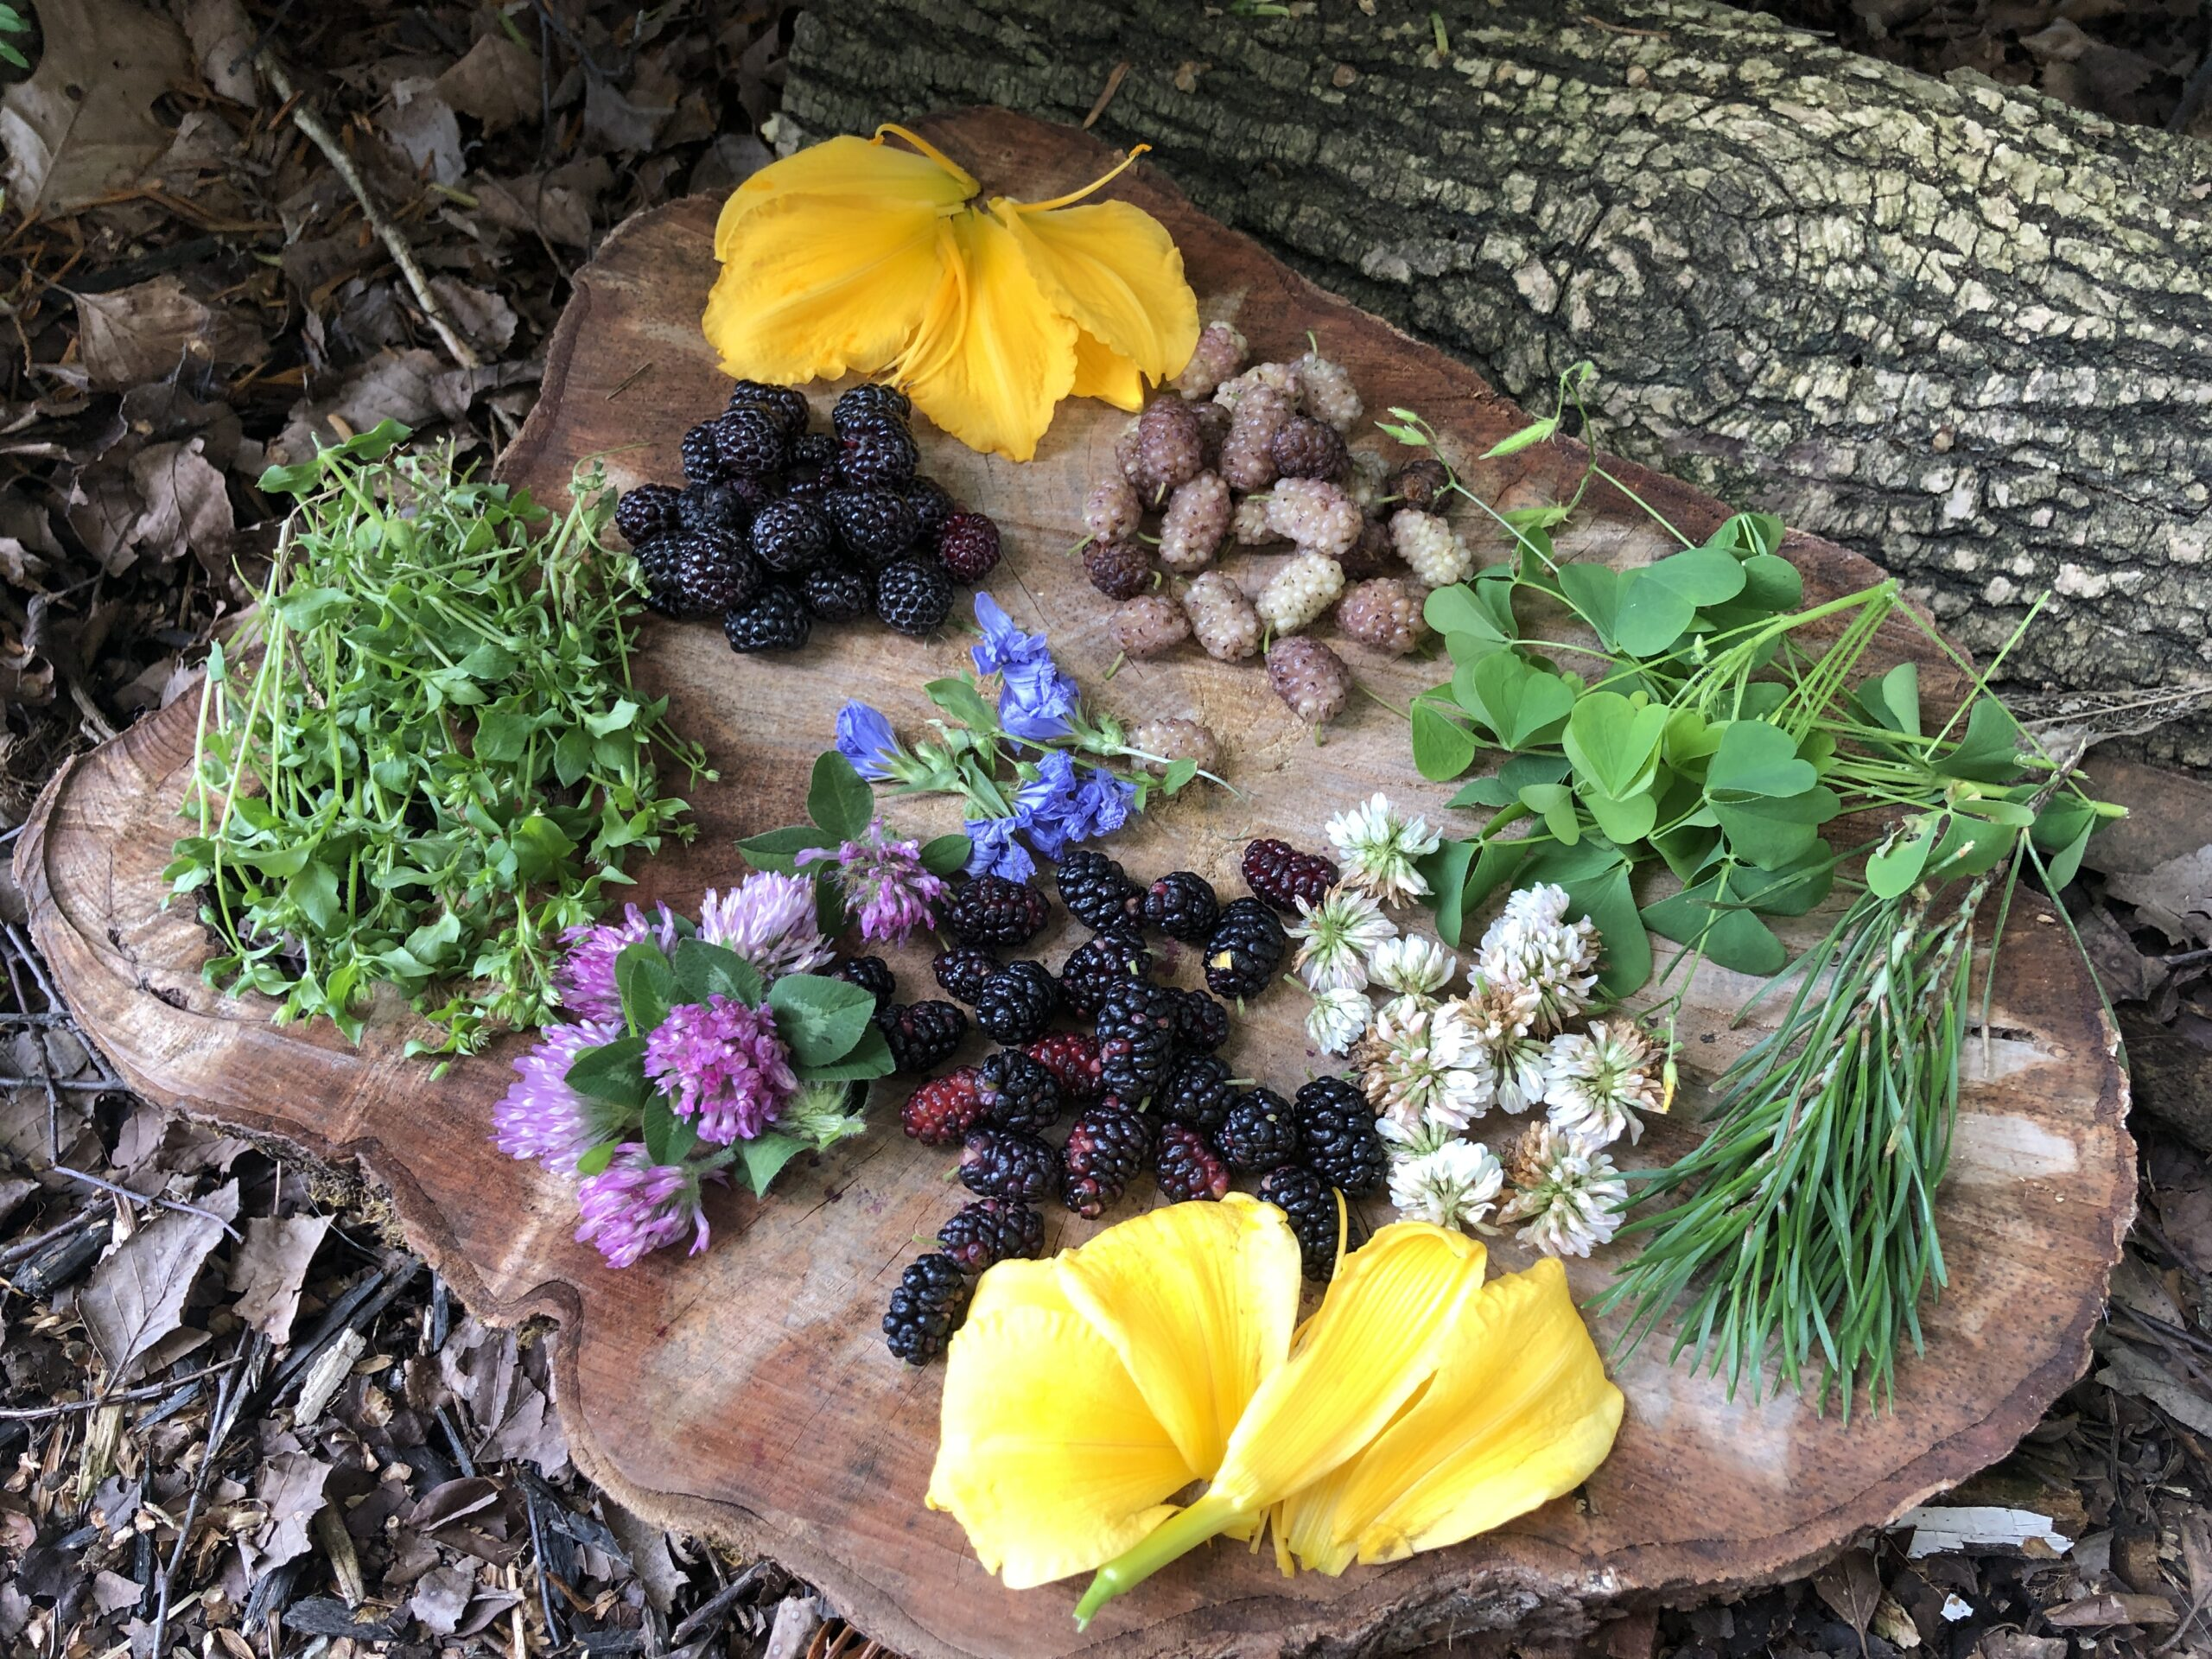 Building Confidence in Your Wild Edible Foraging Skills